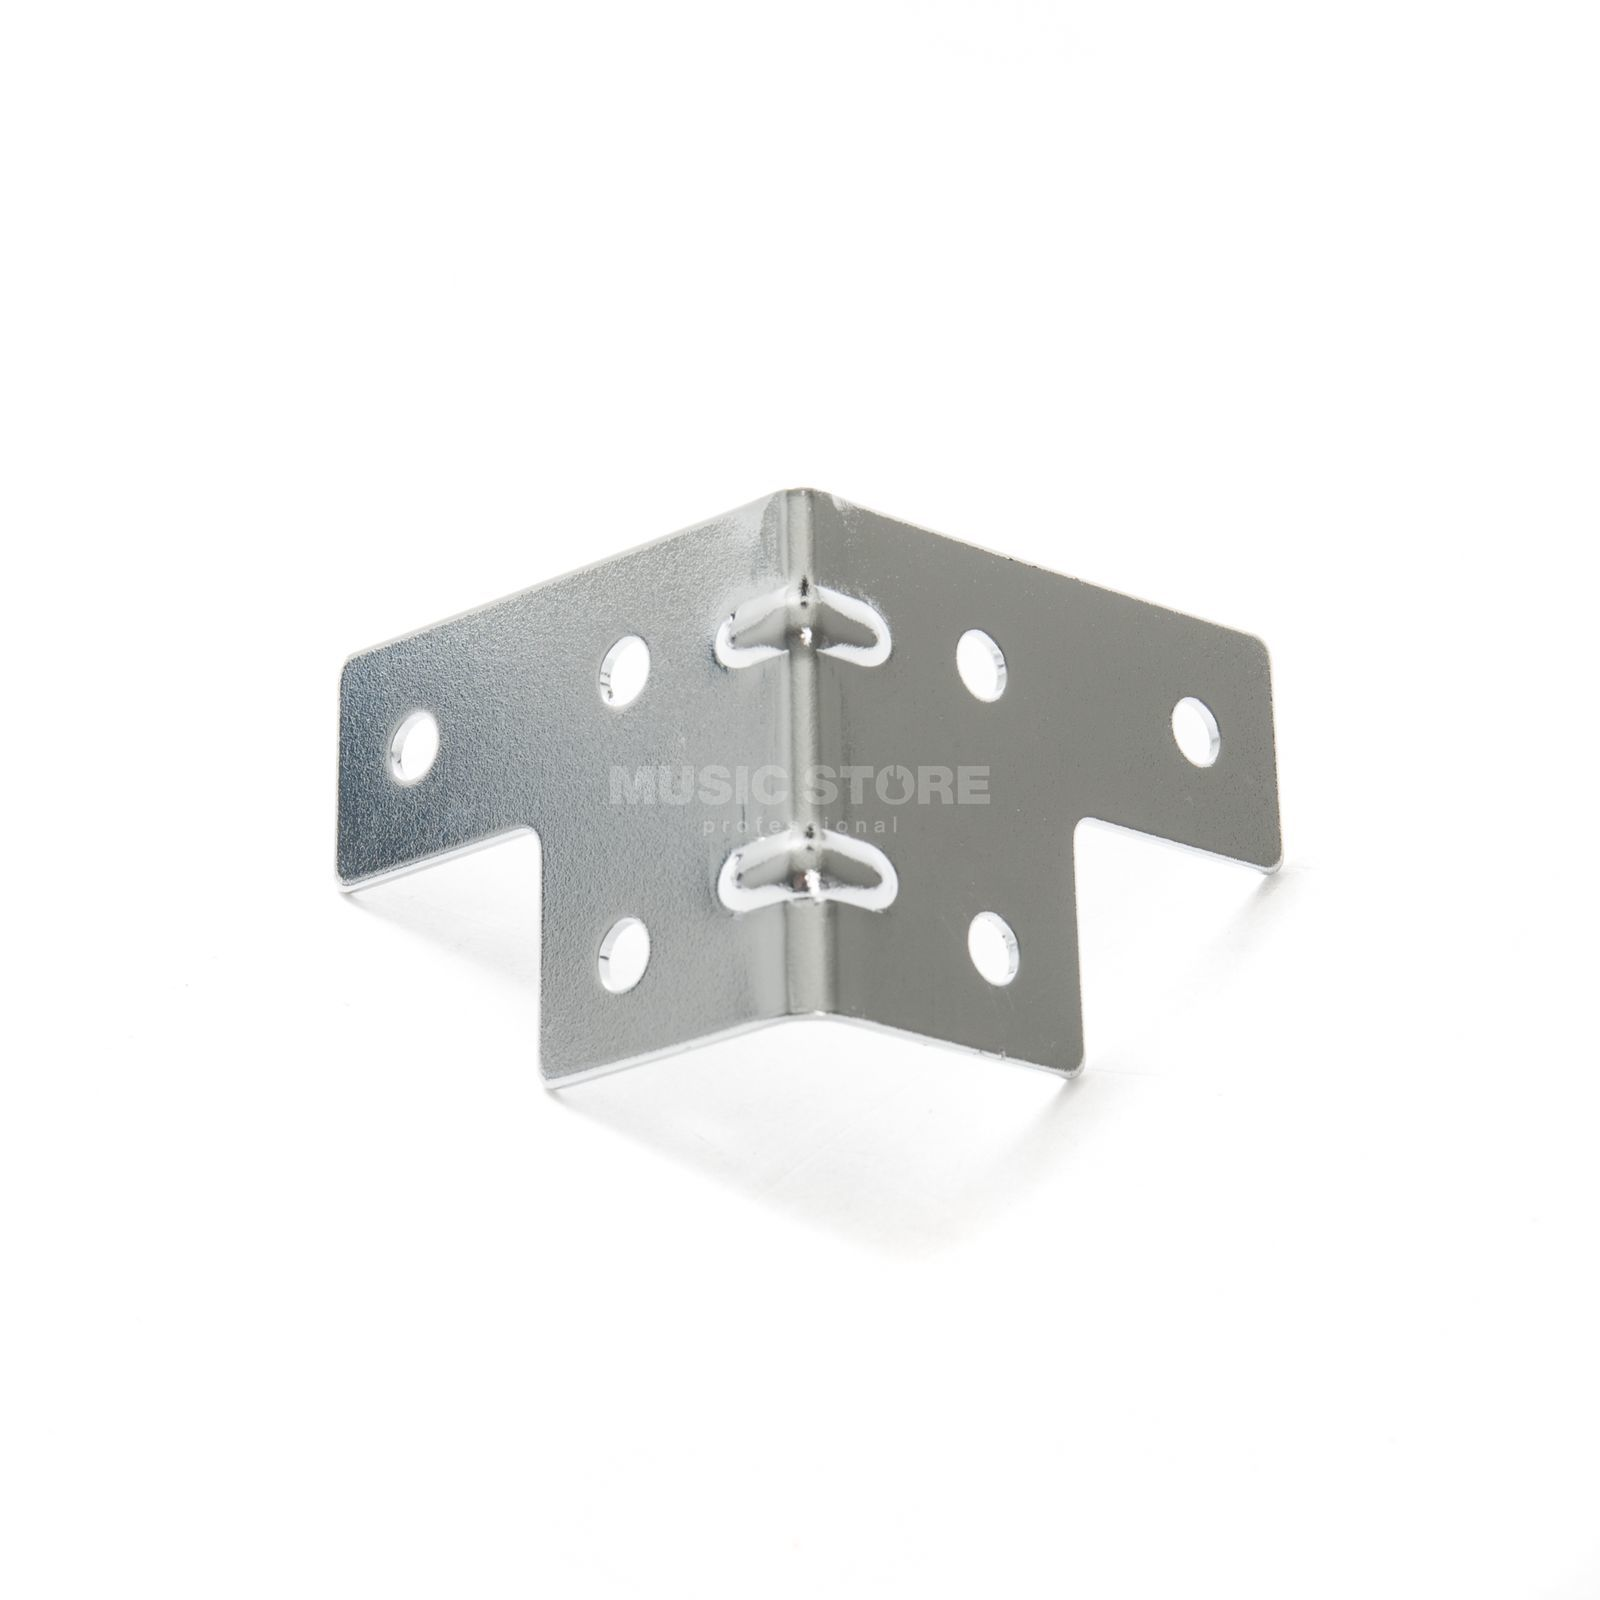 MUSIC STORE Corner Brace 1 55 x 40 mm Product Image